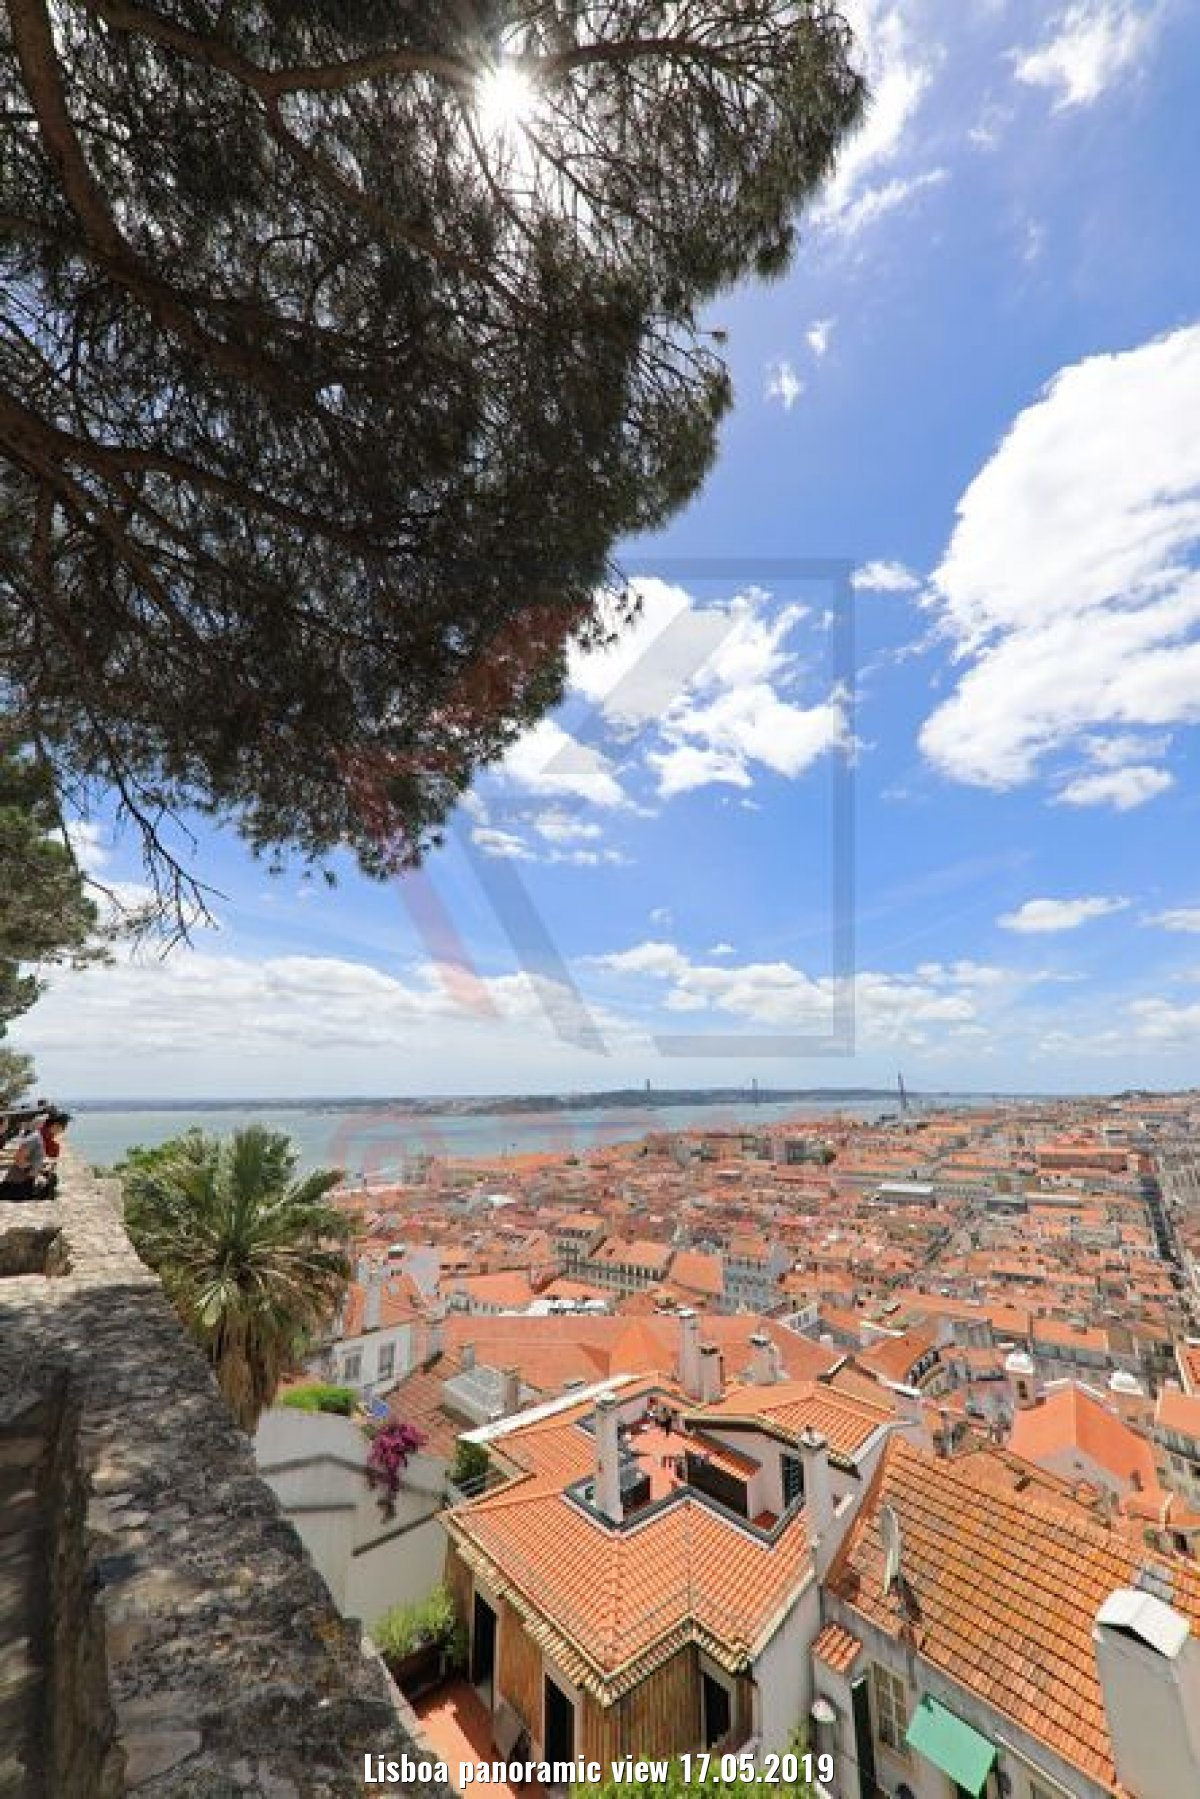 Lisboa panoramic view 17.05.2019